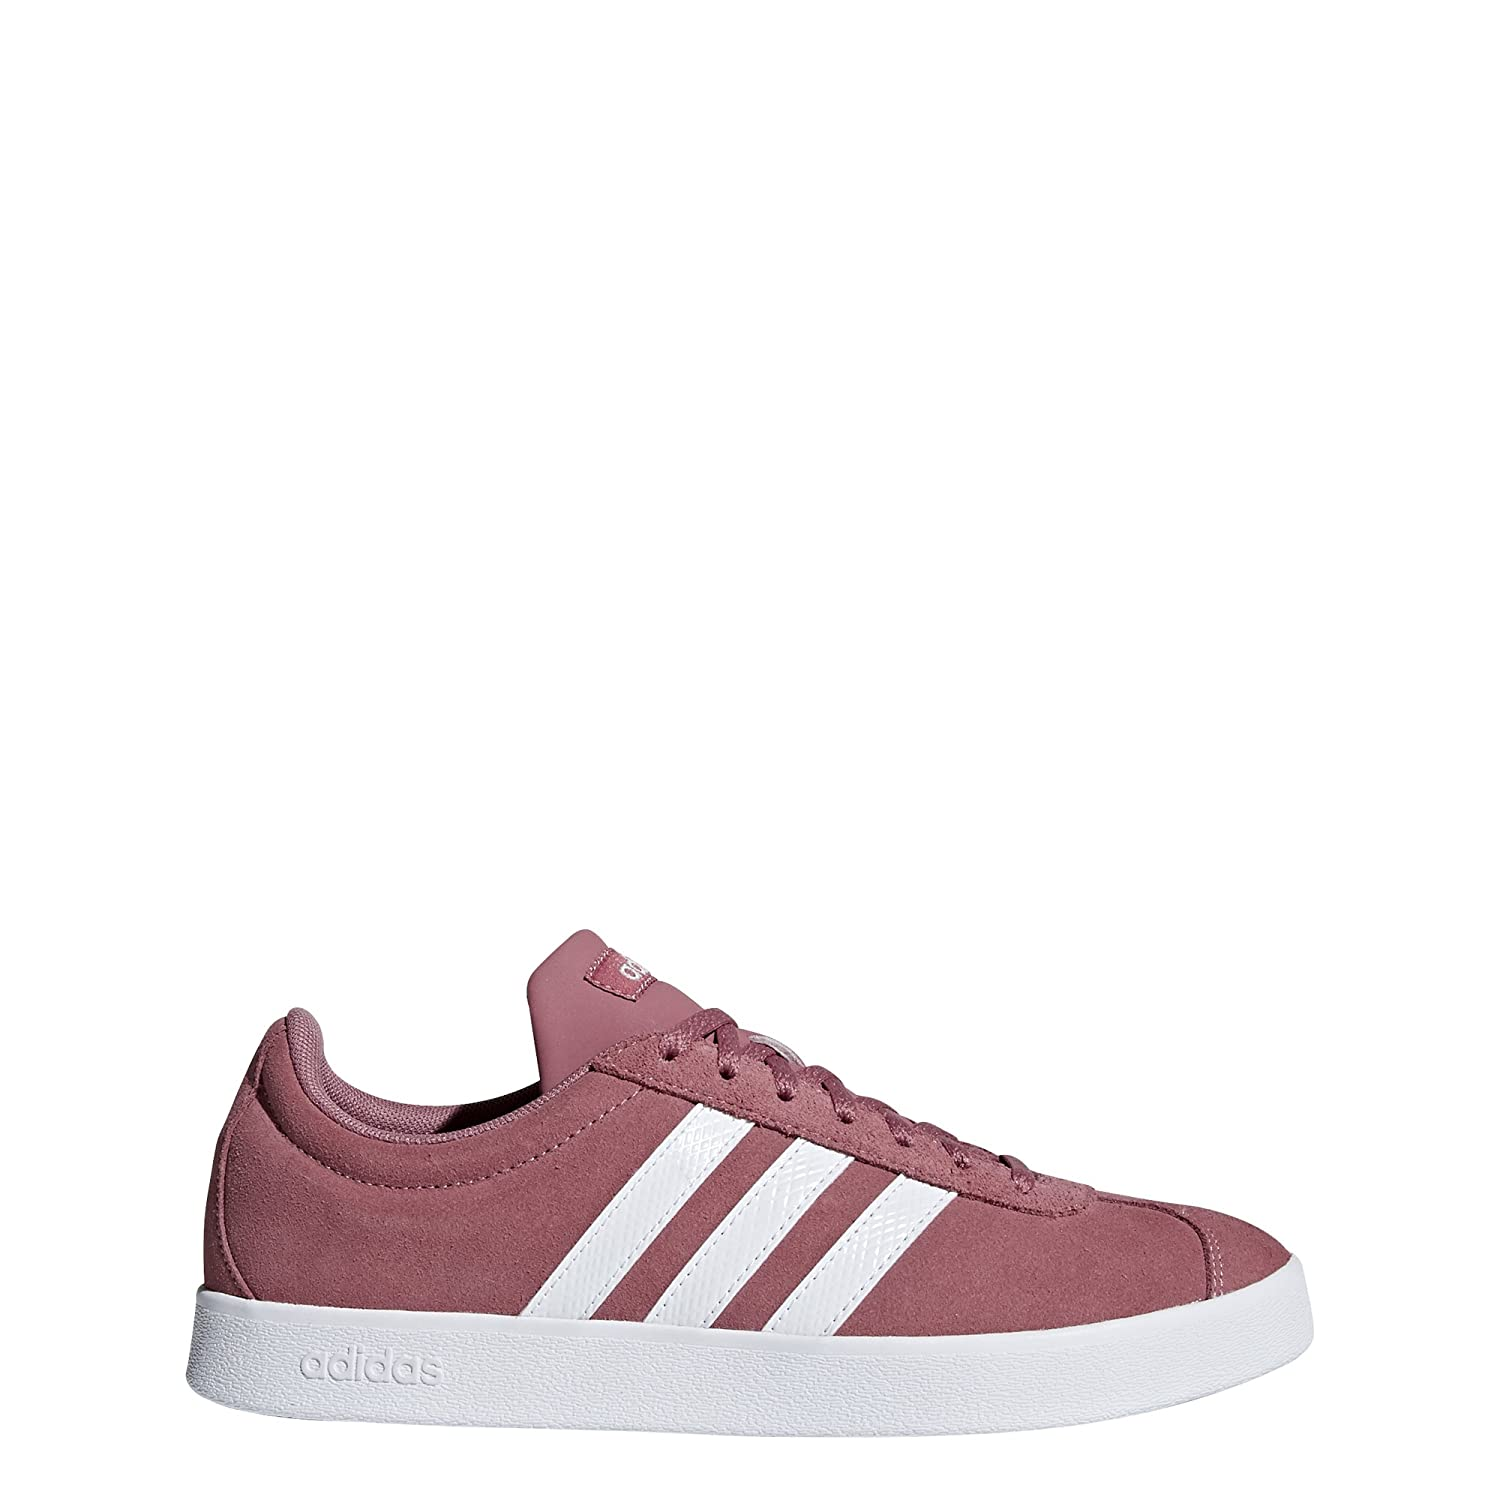 Trace Maroon Footwear White Silver Metallic Adidas Women's VL Court 2.0. Sneakers